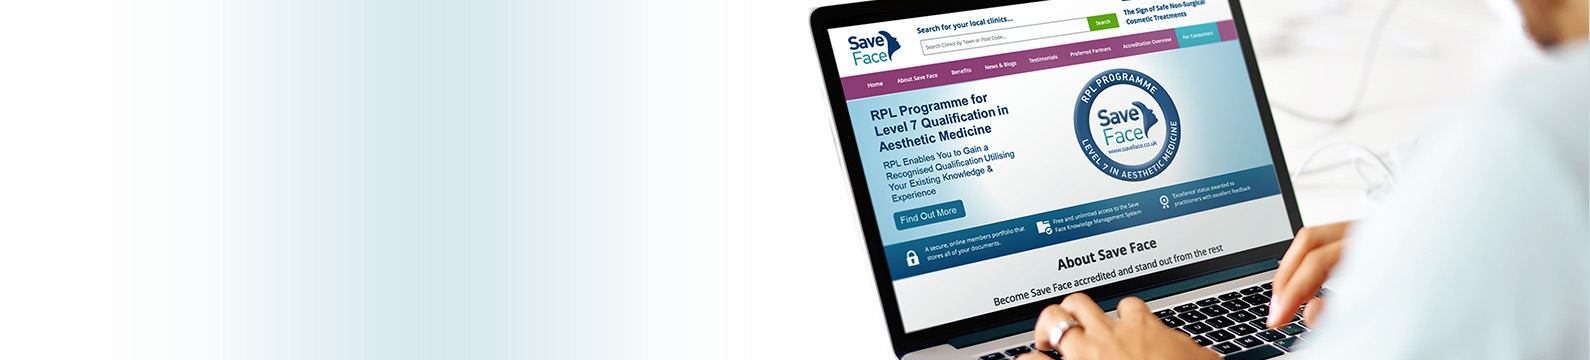 RPL Programme for Level 7 Qualification in Aesthetic Medicine